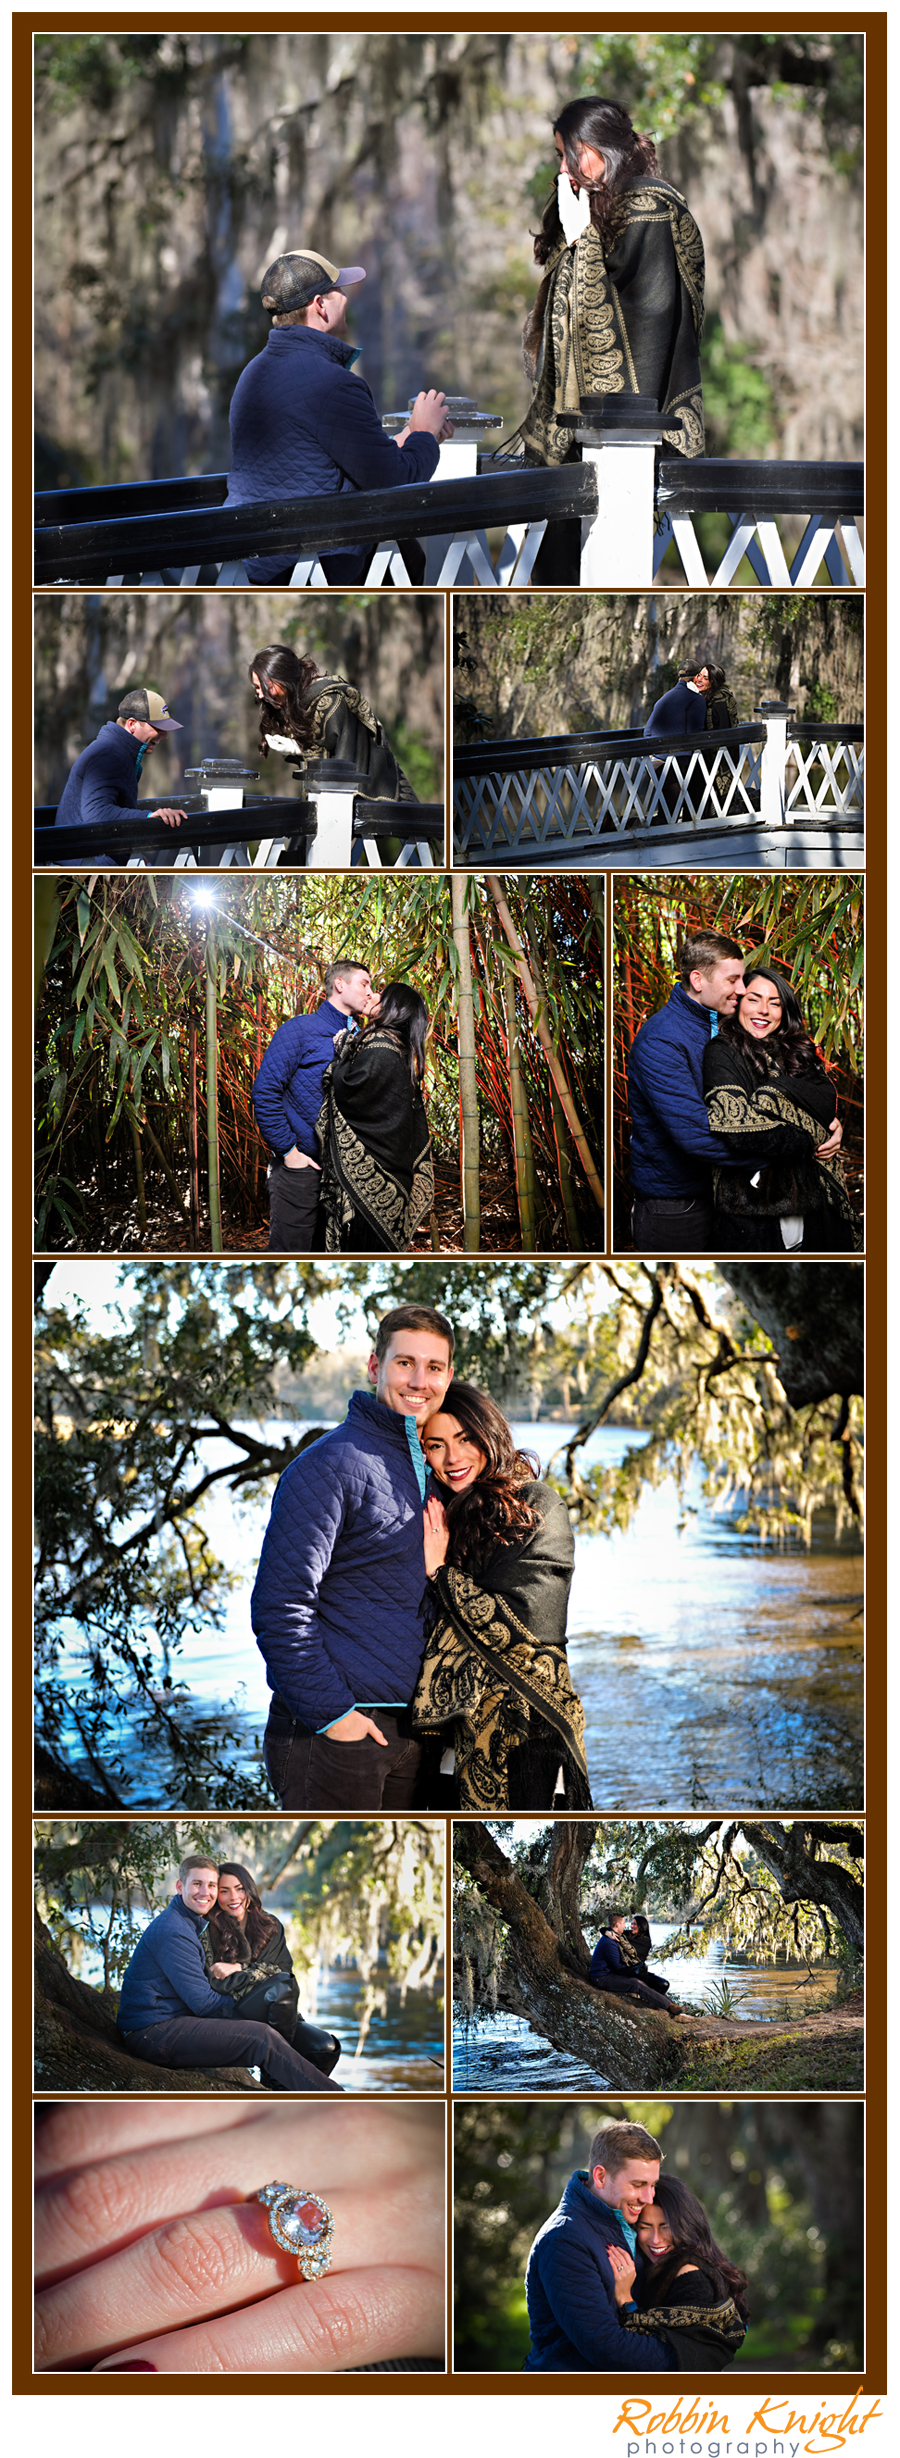 magnolia gardens surprise proposal images from Charleston SC